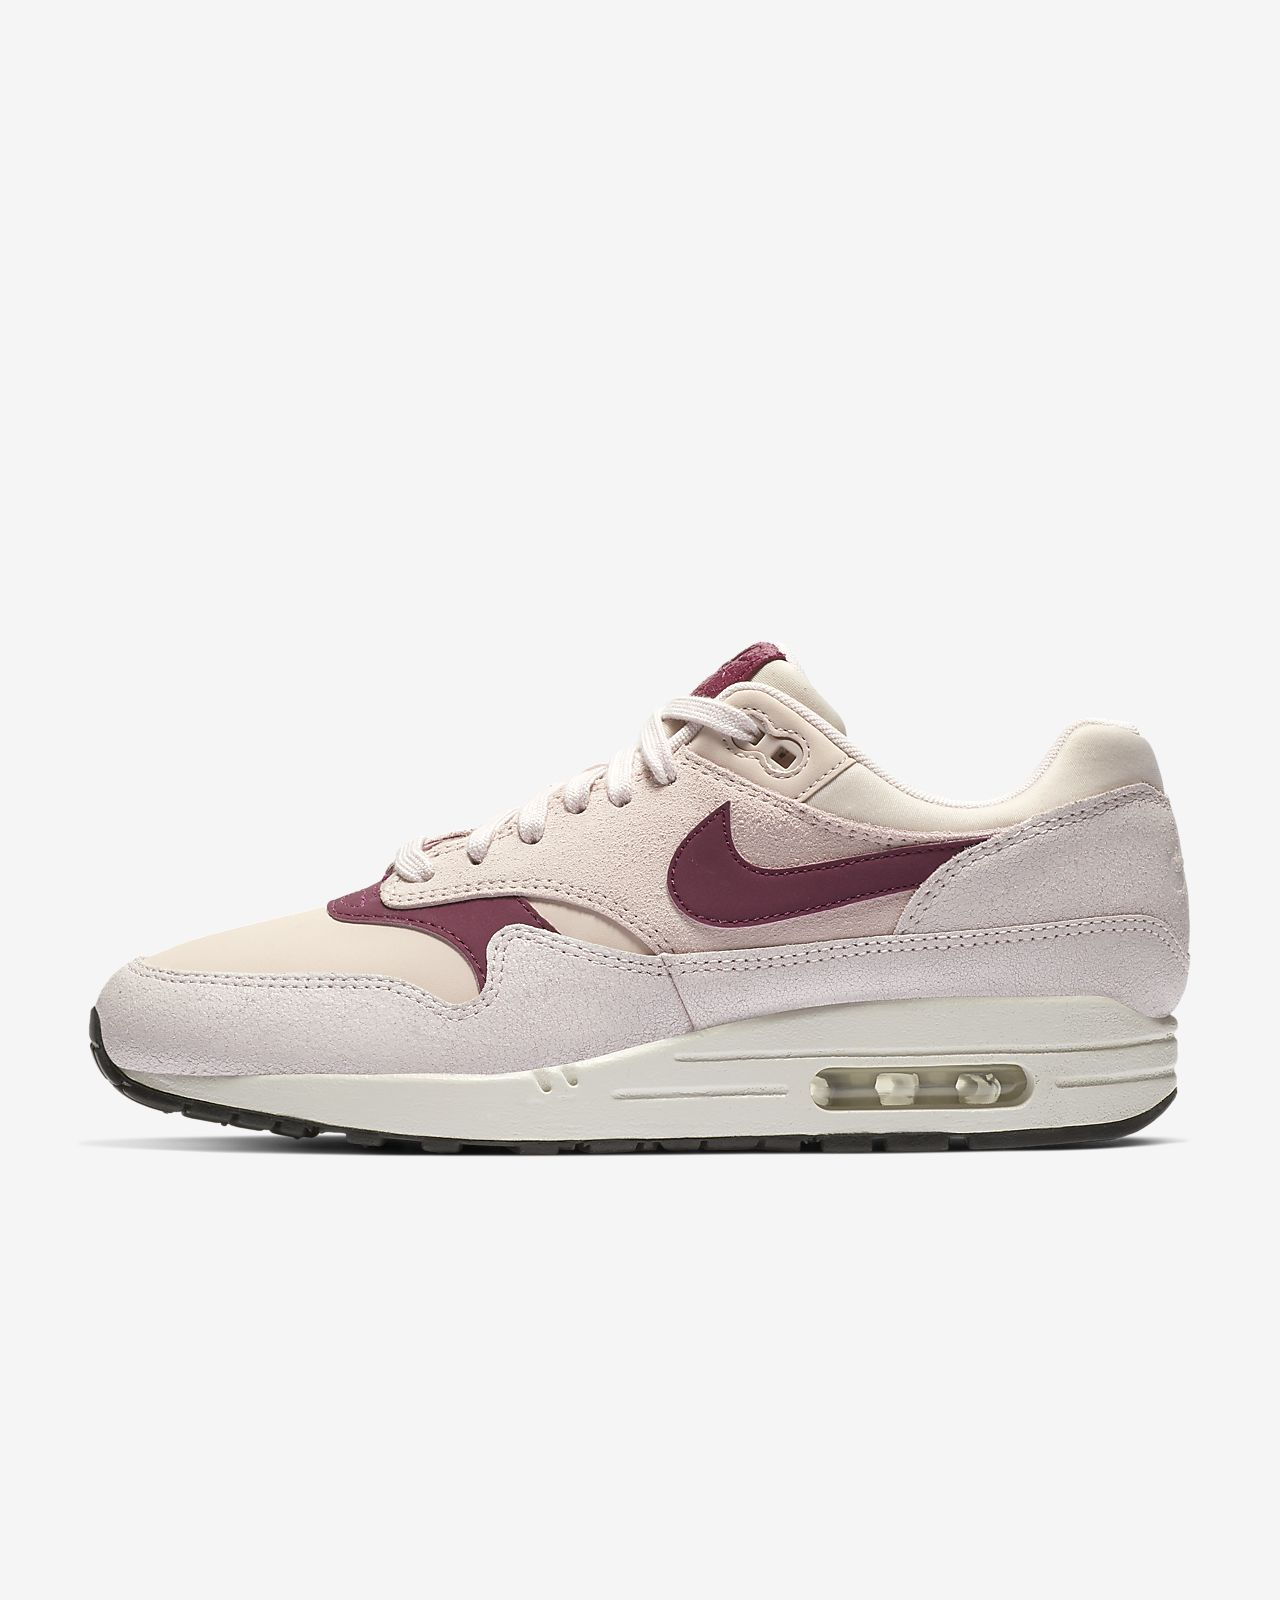 buy popular cd931 906e9 ... Sko Nike Air Max 1 Premium för kvinnor